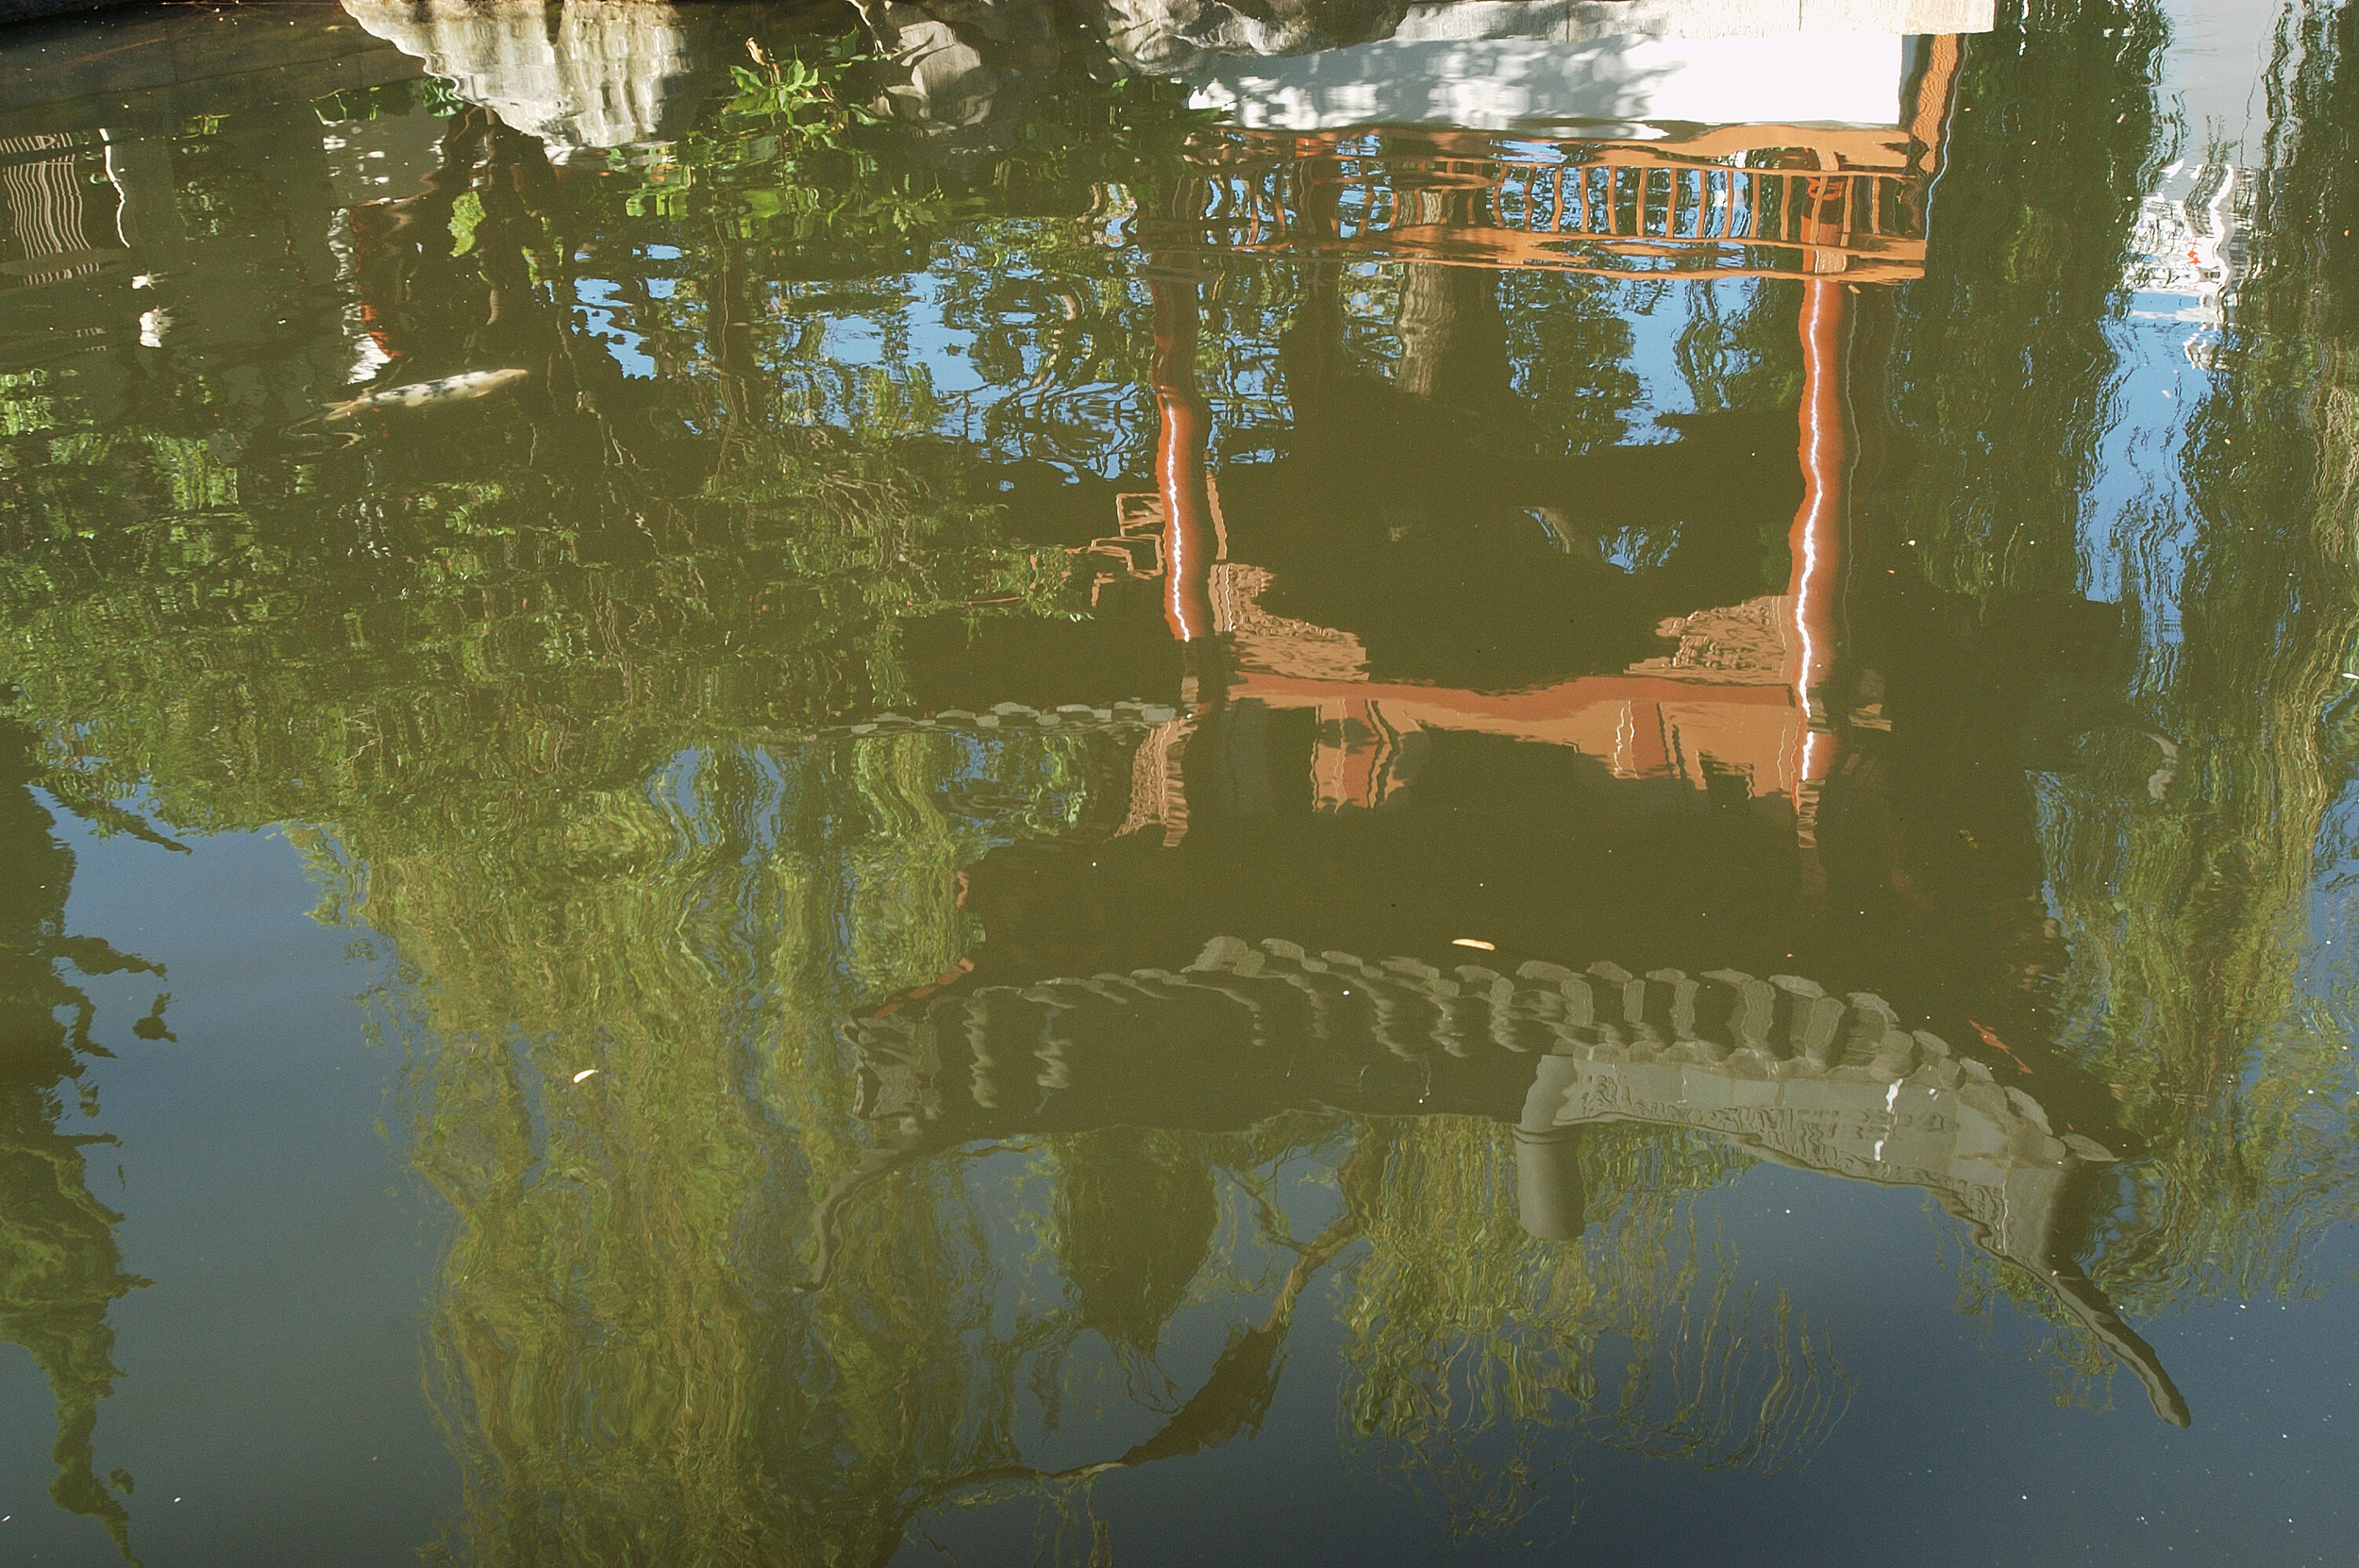 The reflection of a pagoda structure in a pond inthe garden